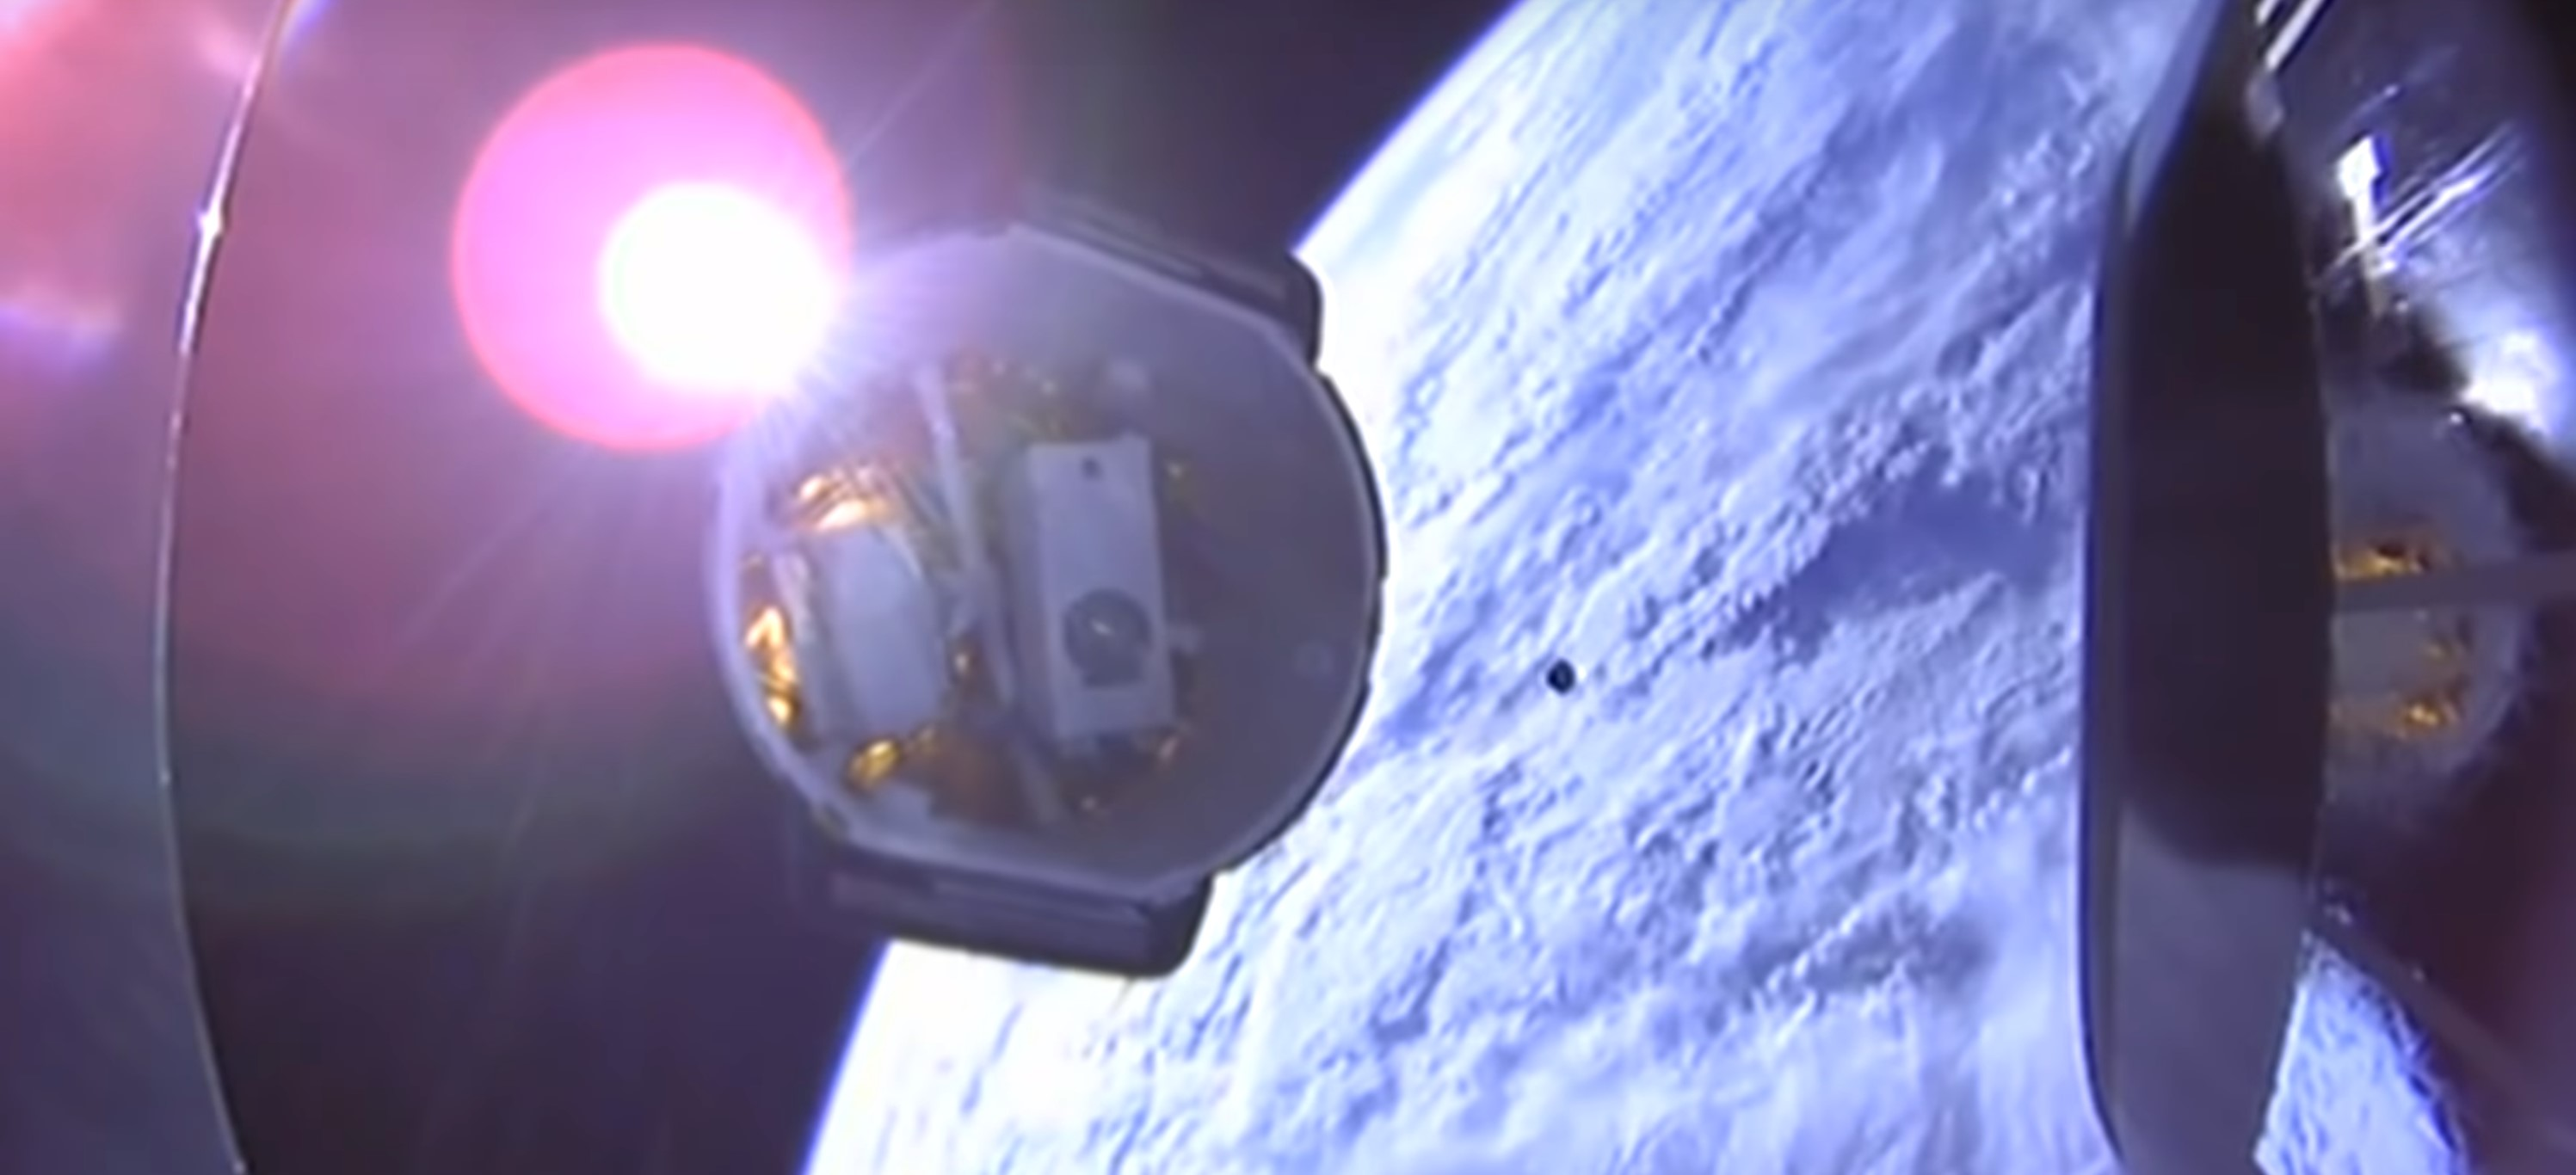 CRS-15 Dragon deployment (SpaceX) 1